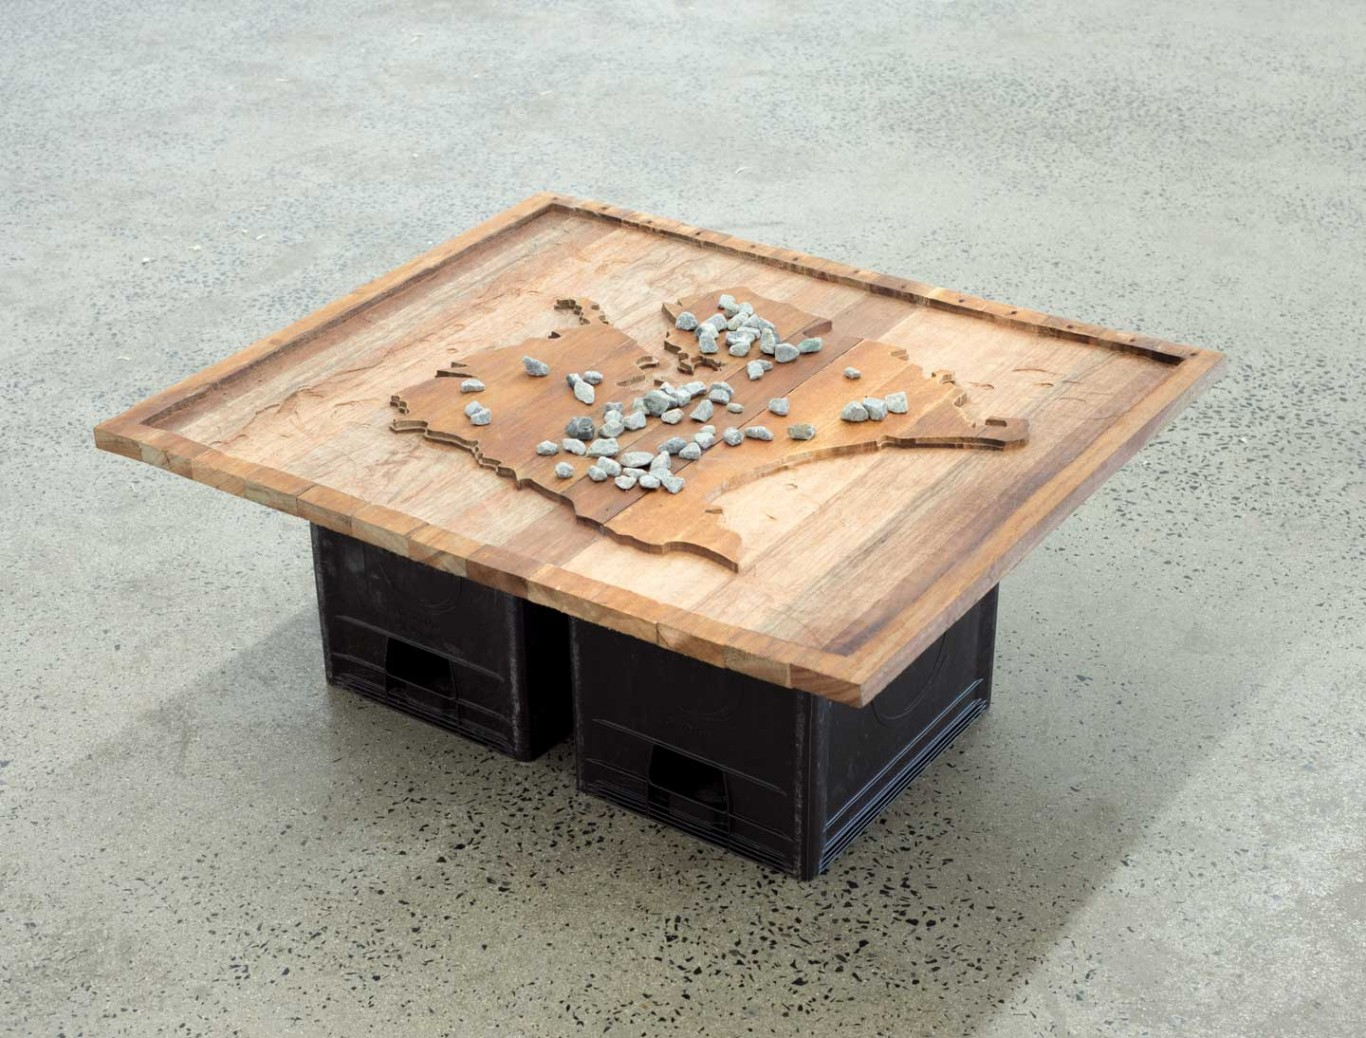 Lungiswa Gqunta, Hata!, 2016. Reclaimed wood, stones, and beer crates, 85 x 73 x35 cm